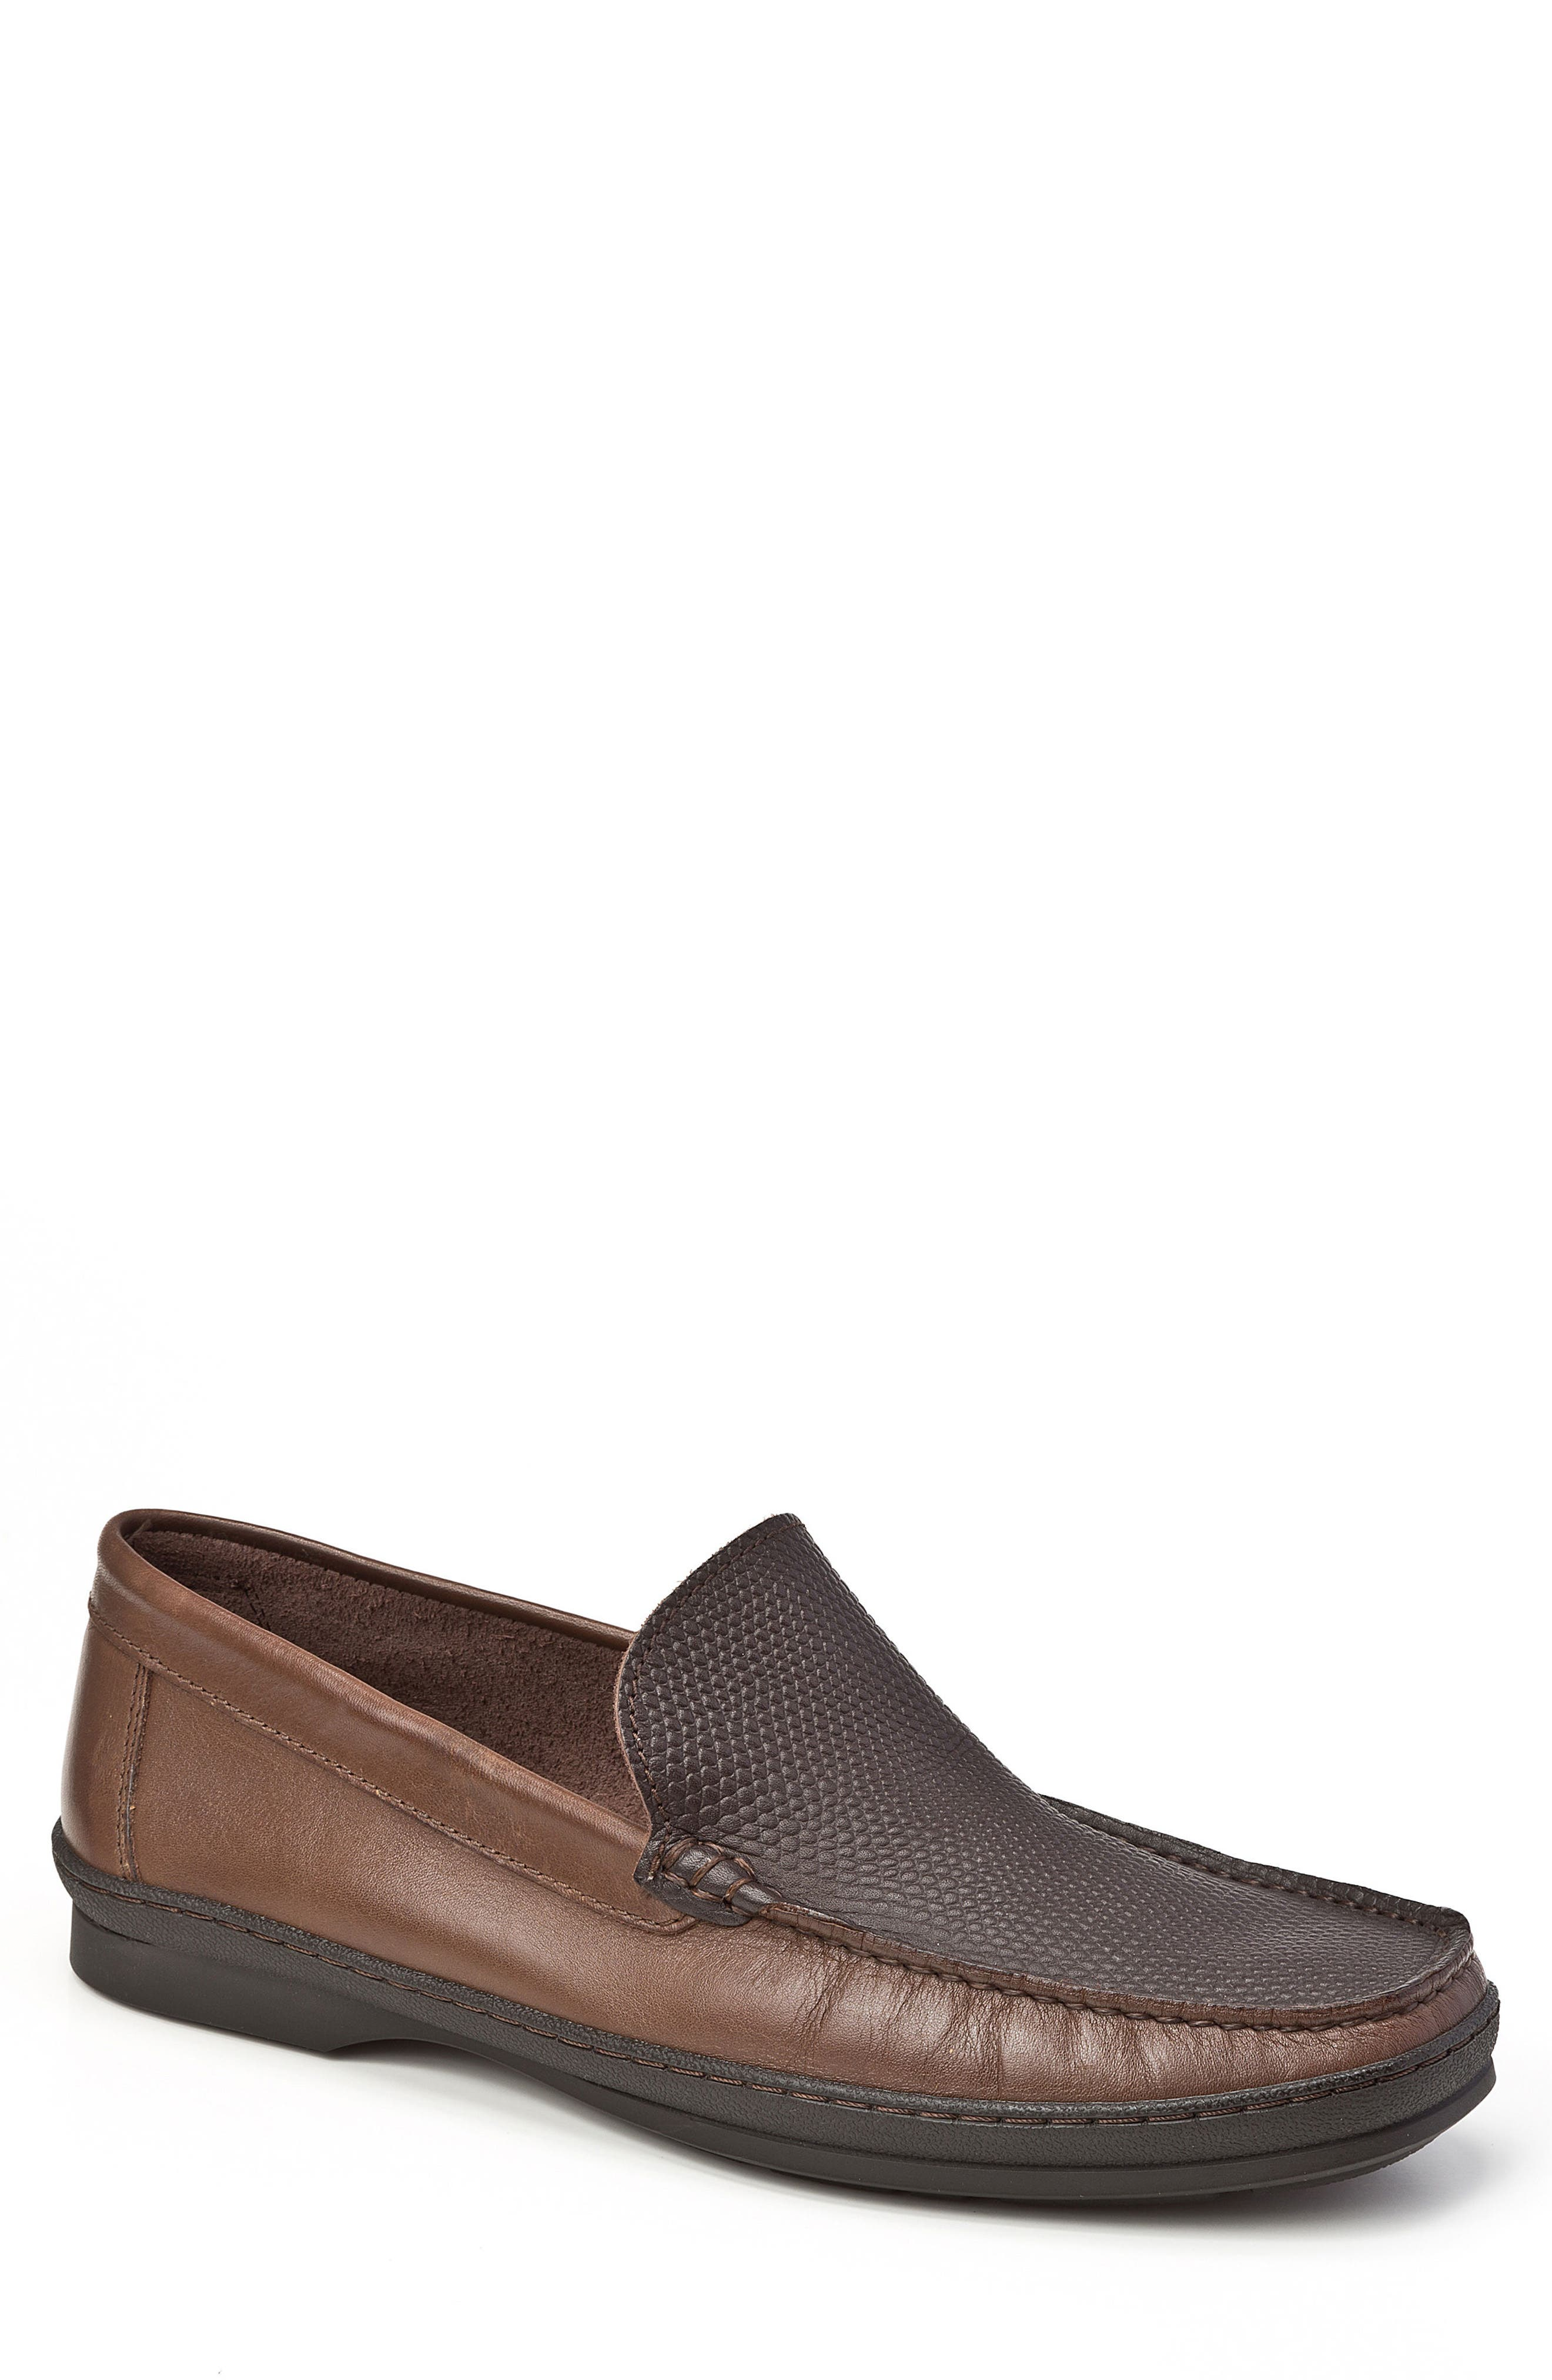 Torre Pebble Embossed Loafer,                             Main thumbnail 1, color,                             200